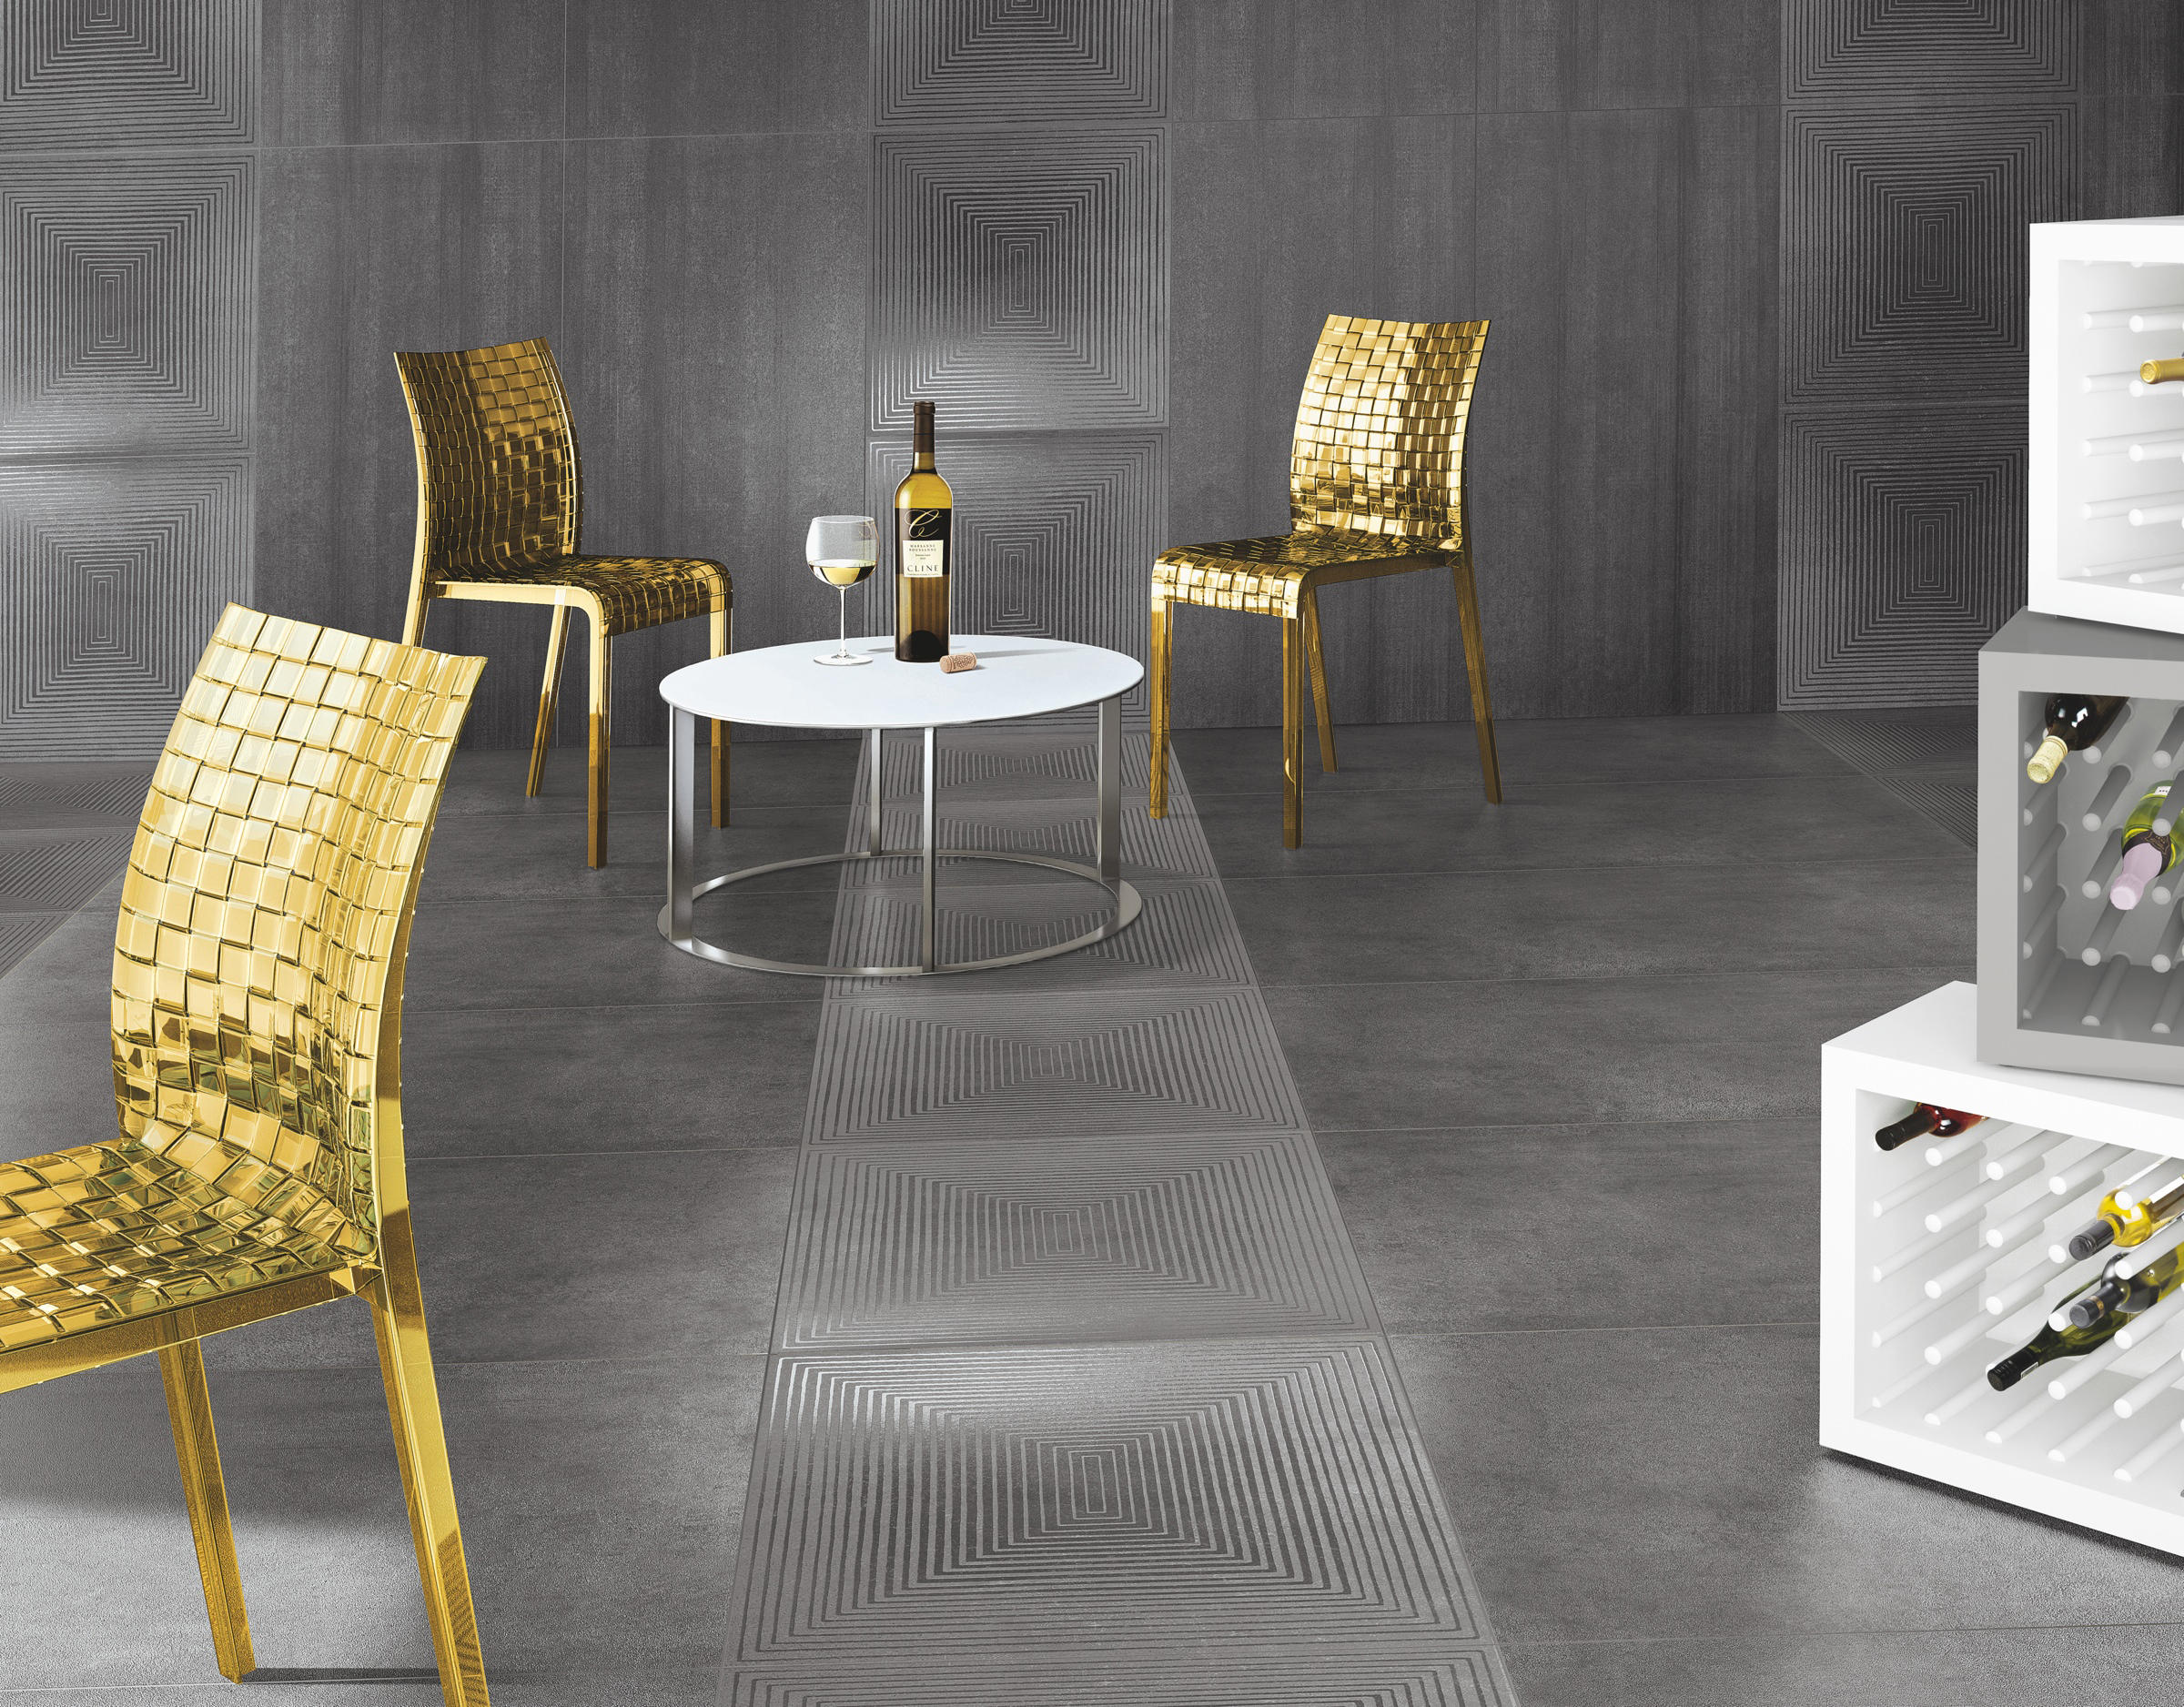 Cemento cassero antracite tiles from casalgrande padana for Carrelage casalgrande padana